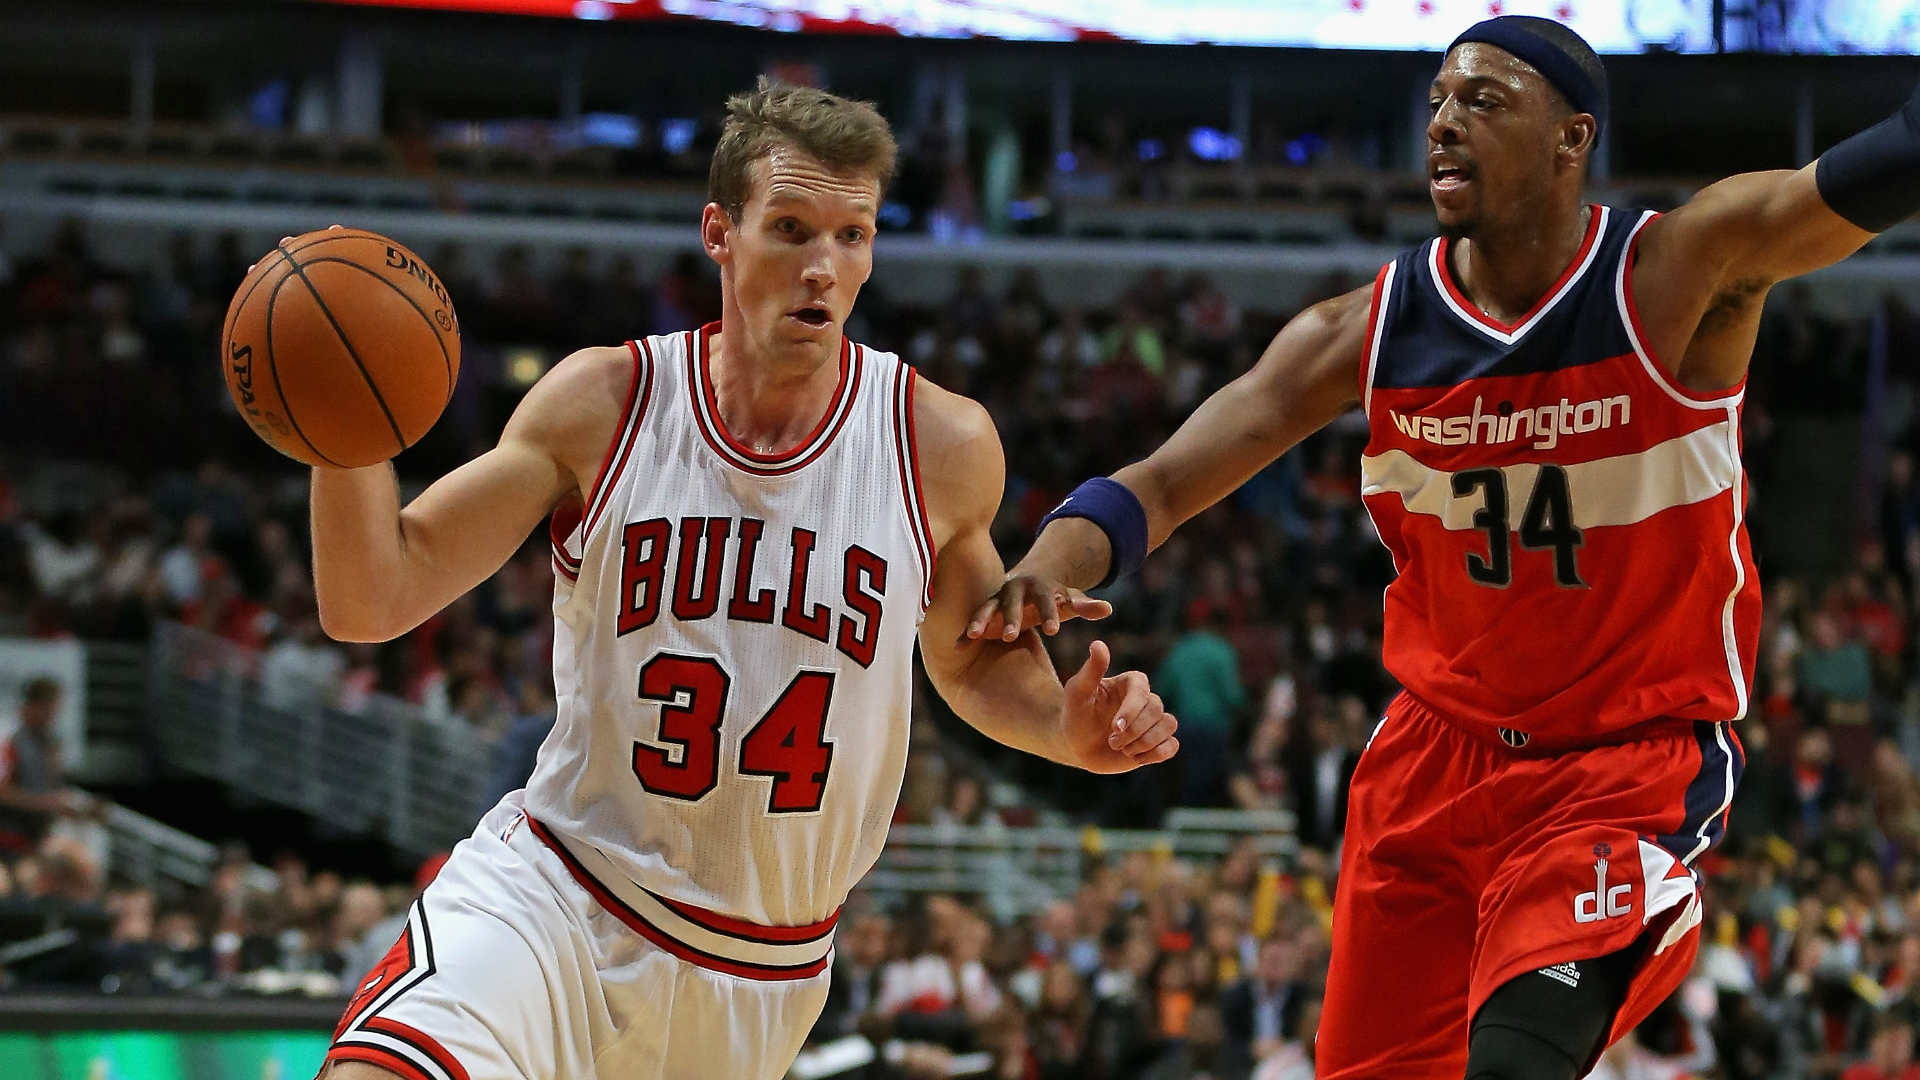 Mike Dunleavy ignores Cavaliers interest, reportedly returning to Bulls